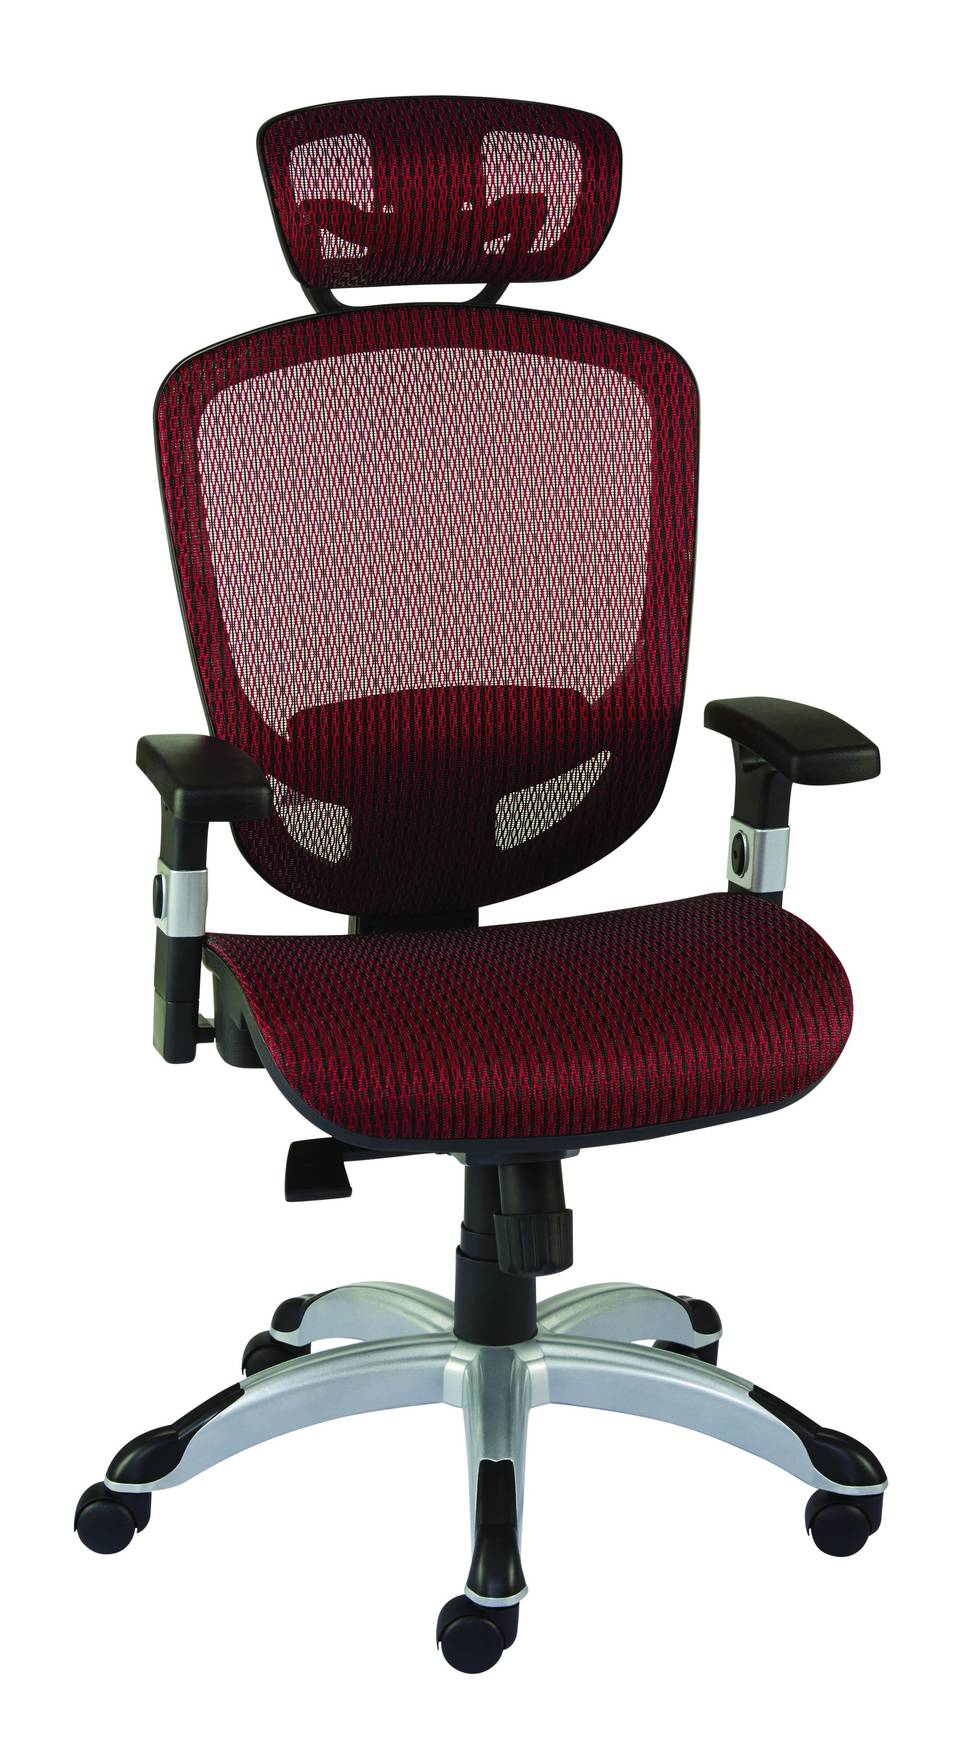 Desk stools are perfect for comfortable work best computer chairs - Desk Stools Are Perfect For Comfortable Work Best Computer Chairs 21